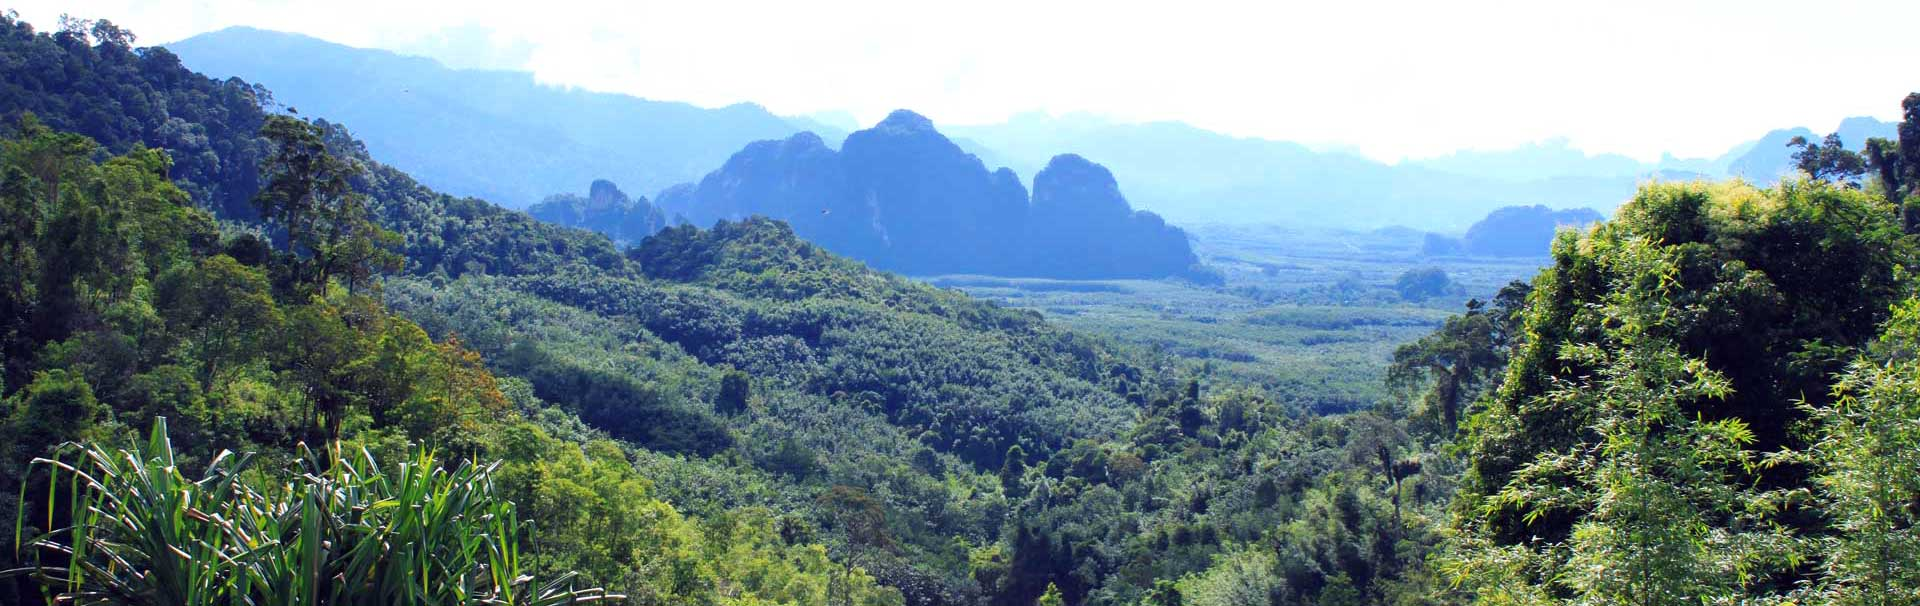 Khao Sok as seen from the view point